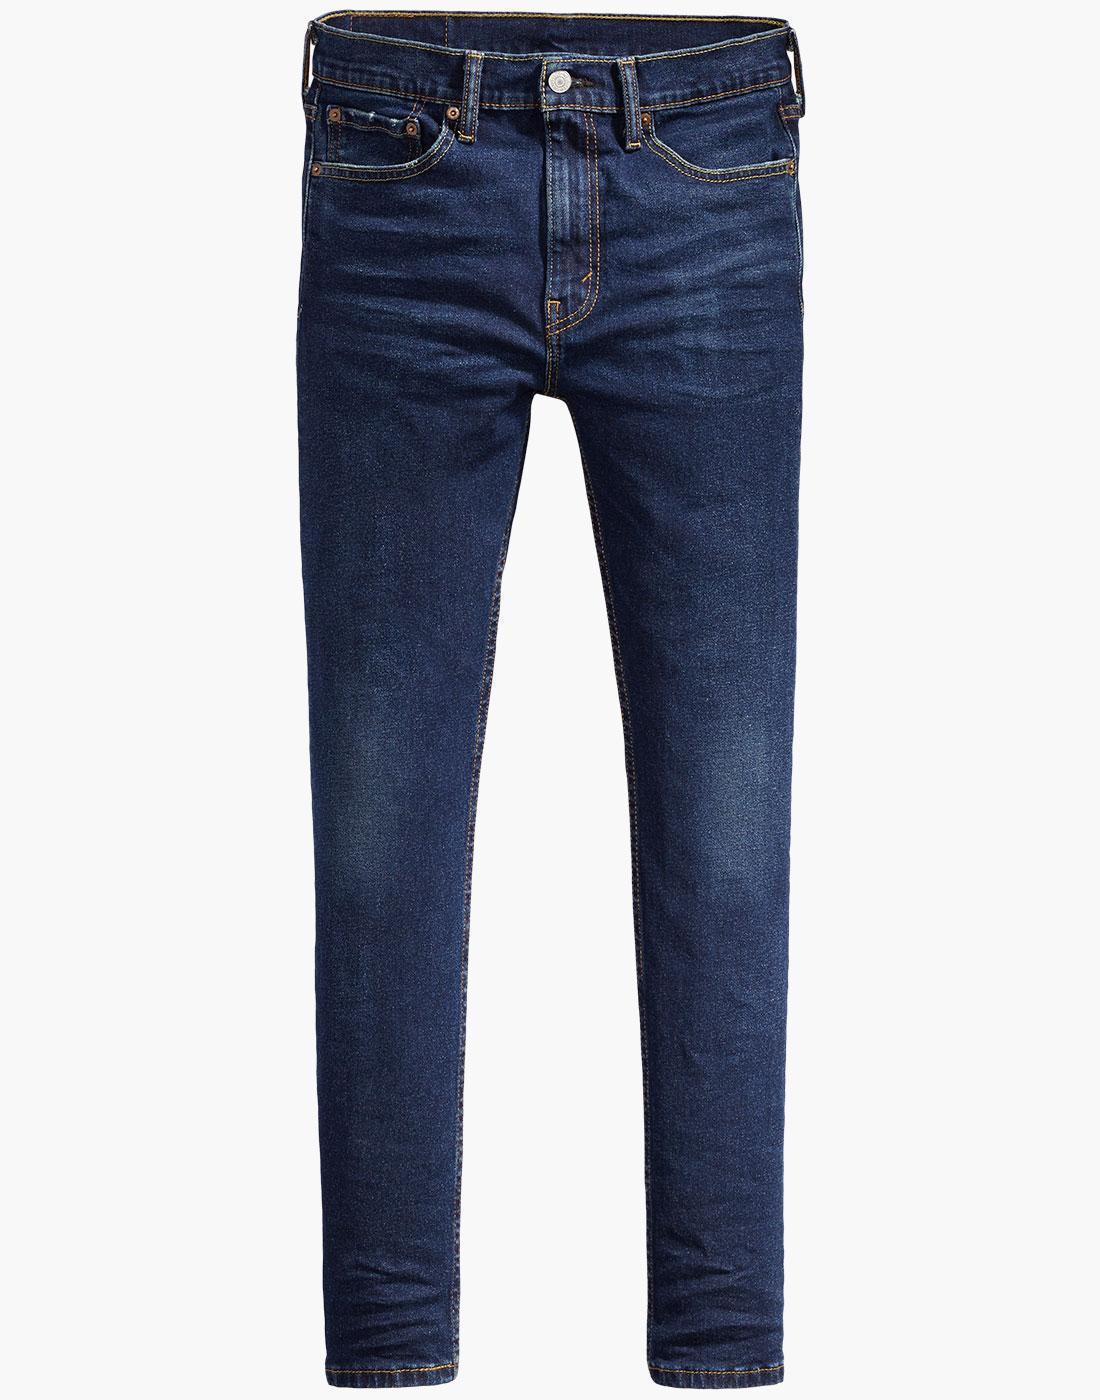 LEVI'S 519 Mod Extreme Skinny Jeans in Gritt 519